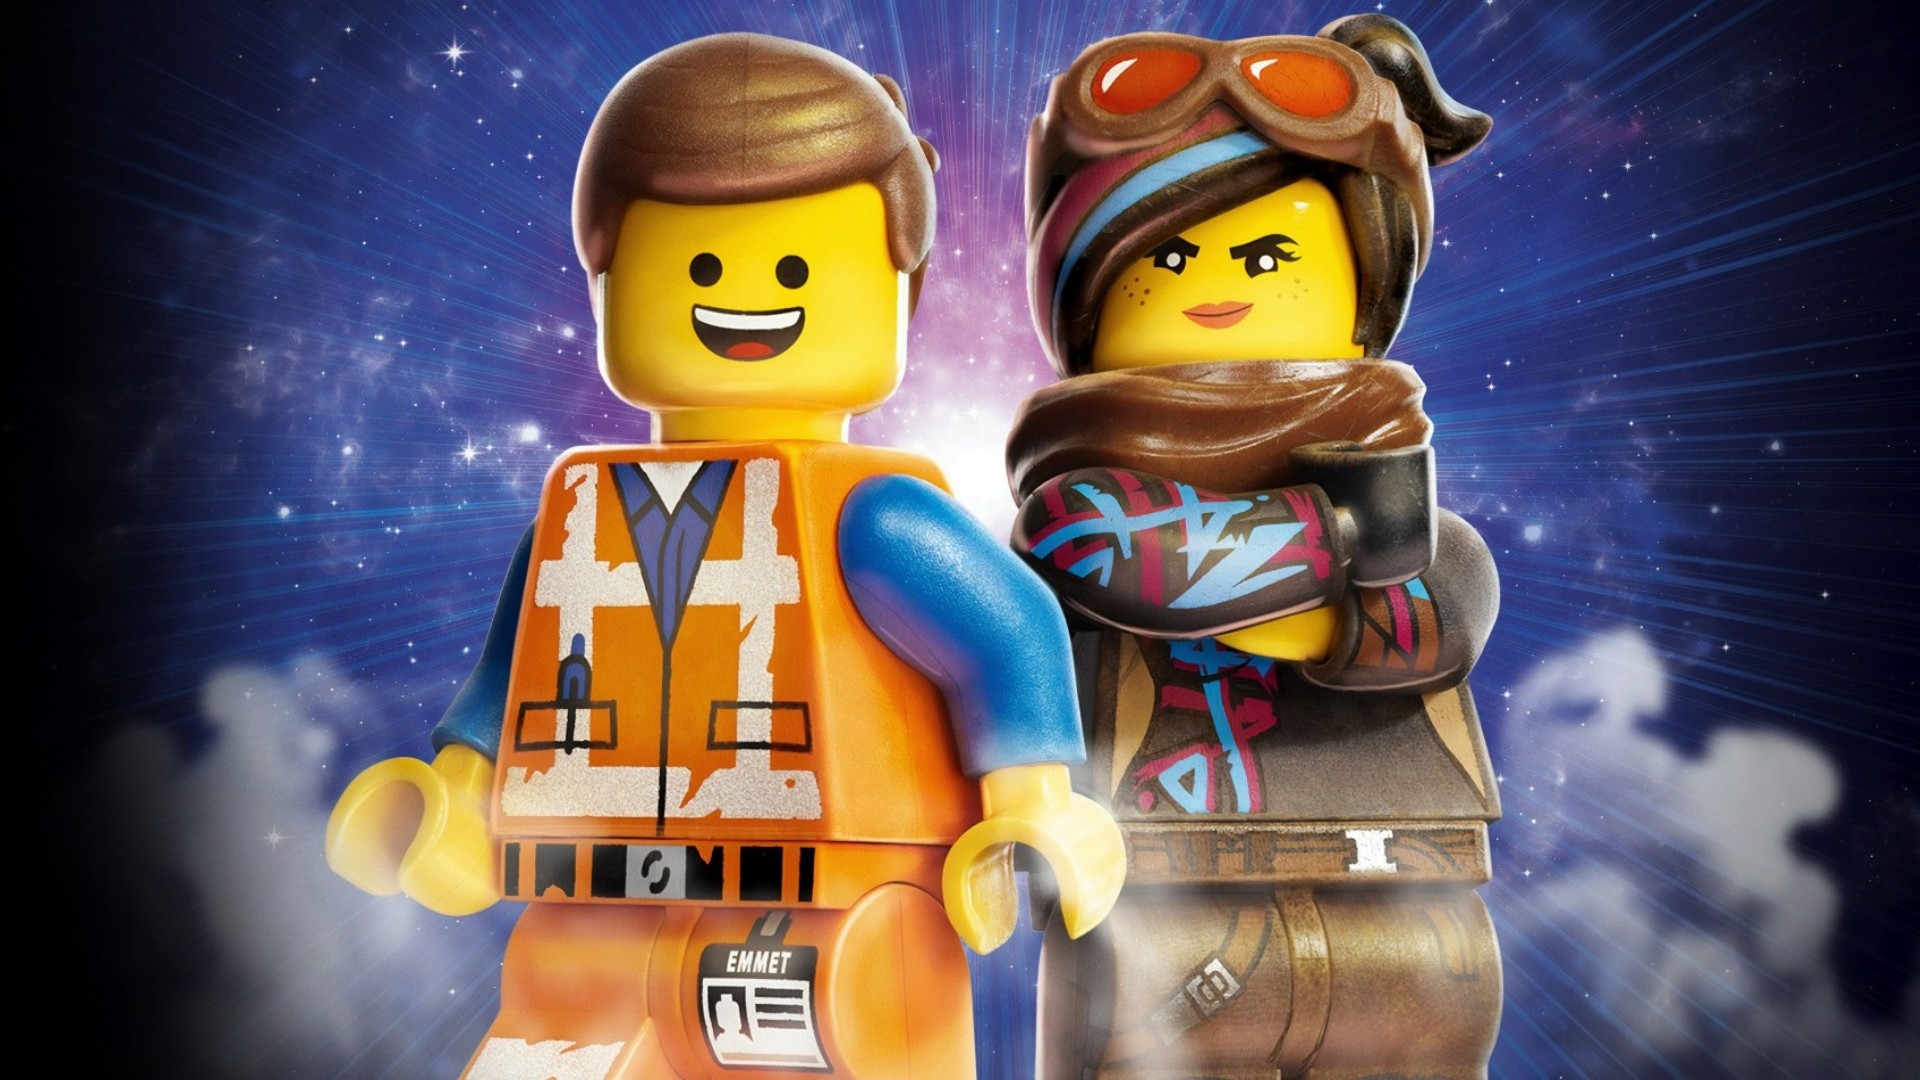 Emmet and Lucy